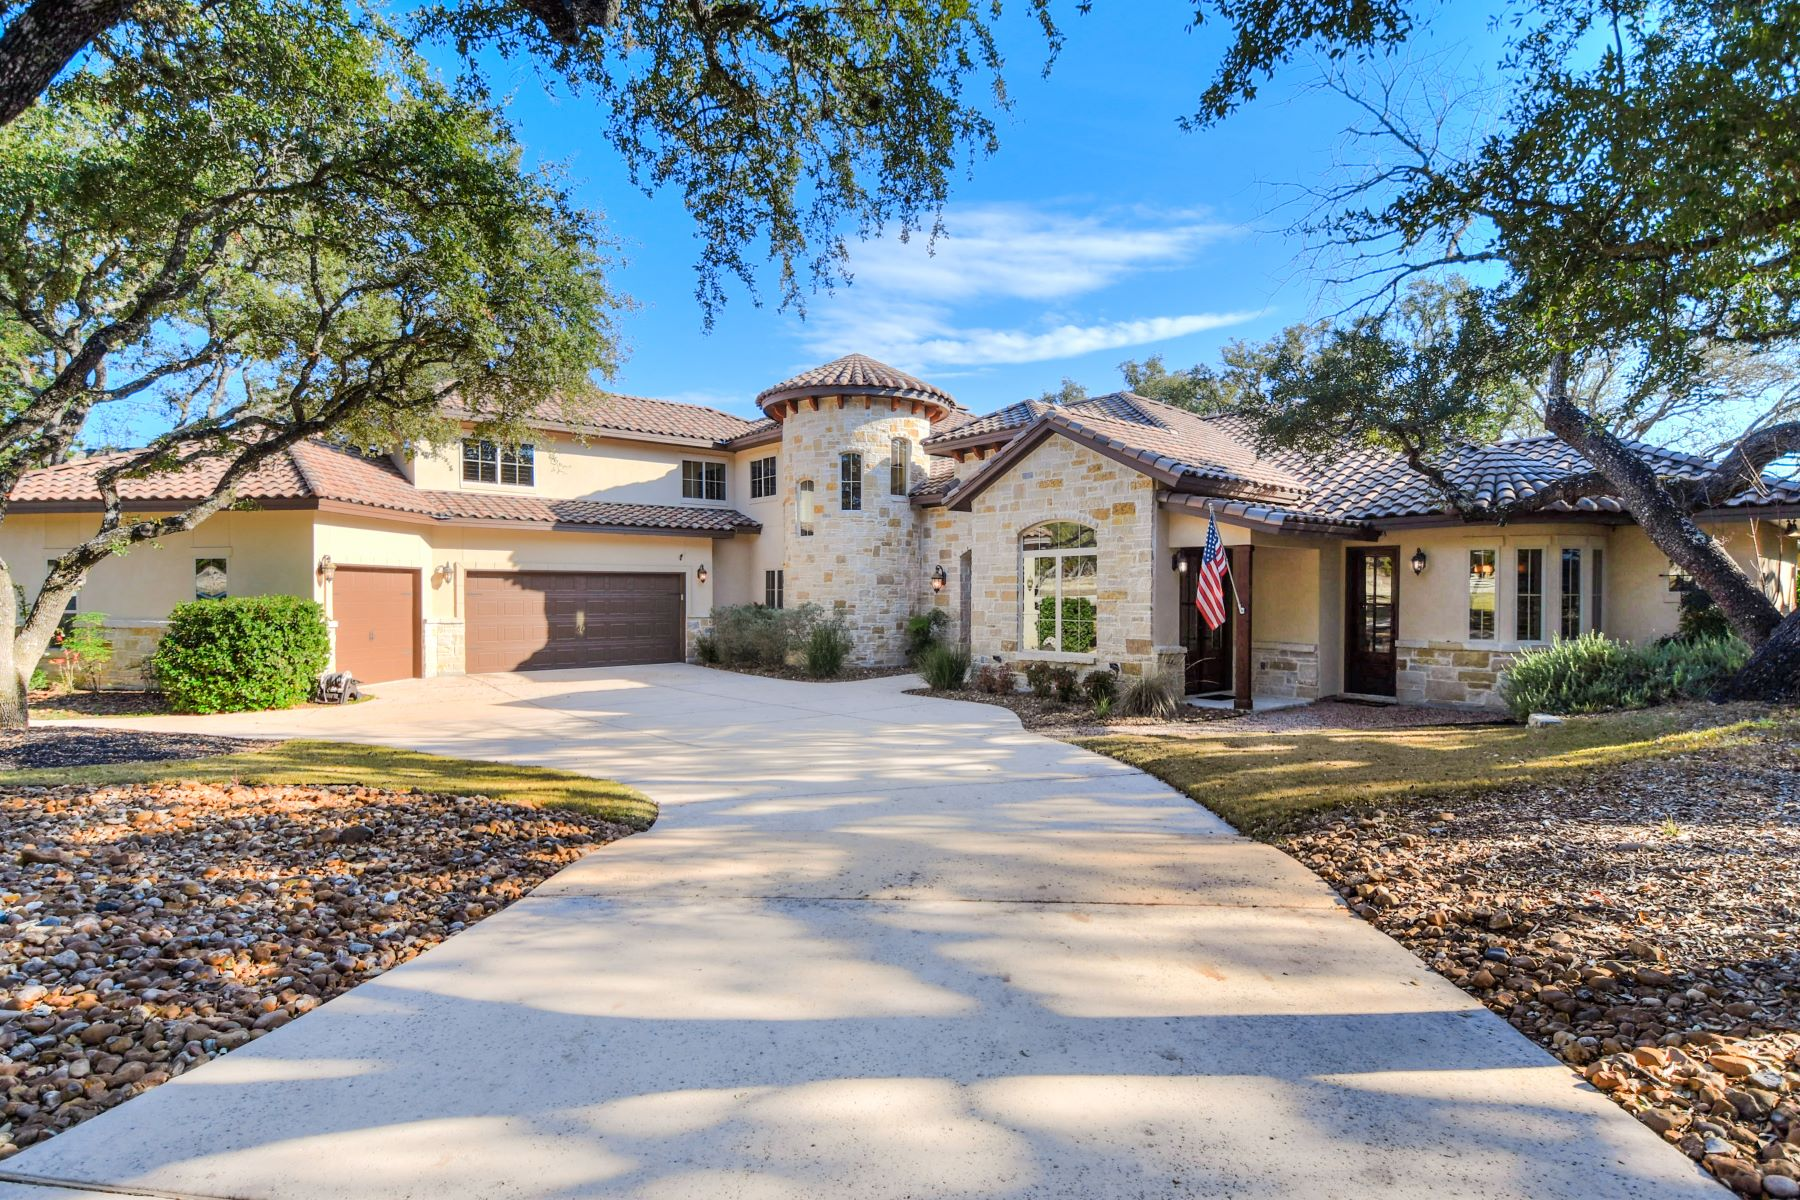 Single Family Homes for Active at Hill Country Estate with Guest Casita 101 Cabin Springs Boerne, Texas 78006 United States